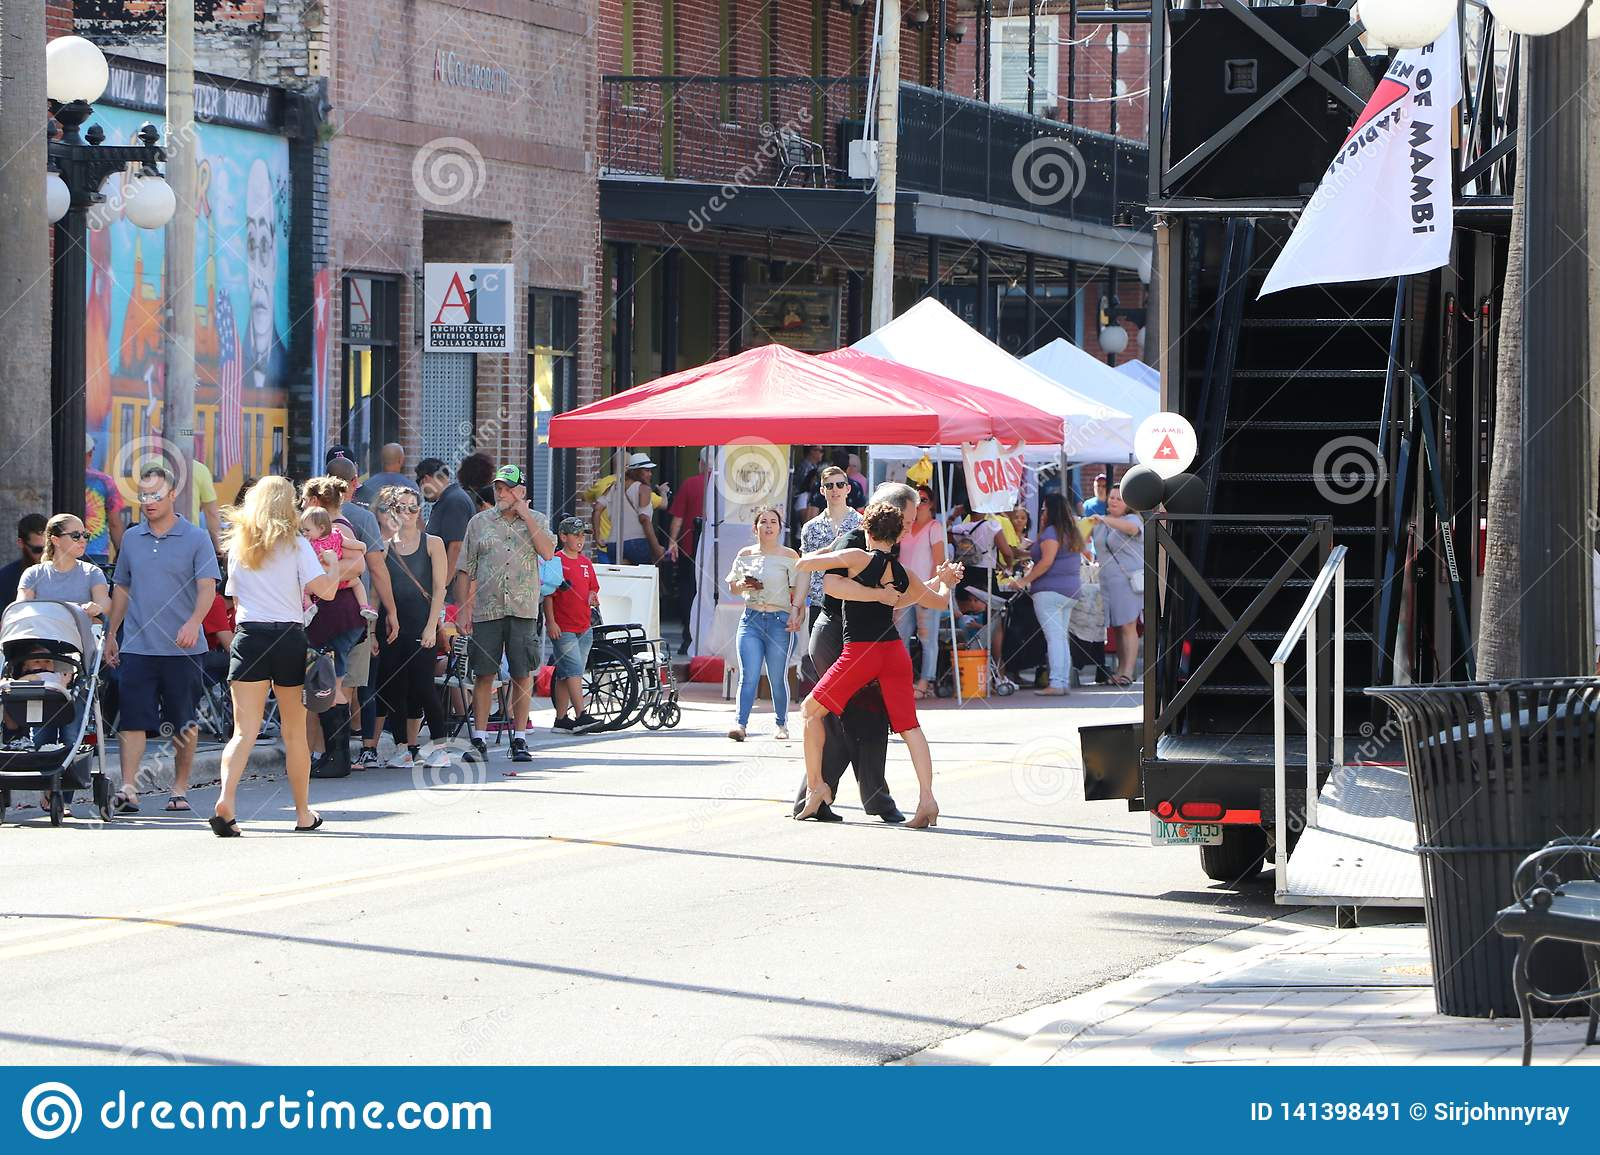 Ybor city historic heritage celebration with tango dancing in the streets